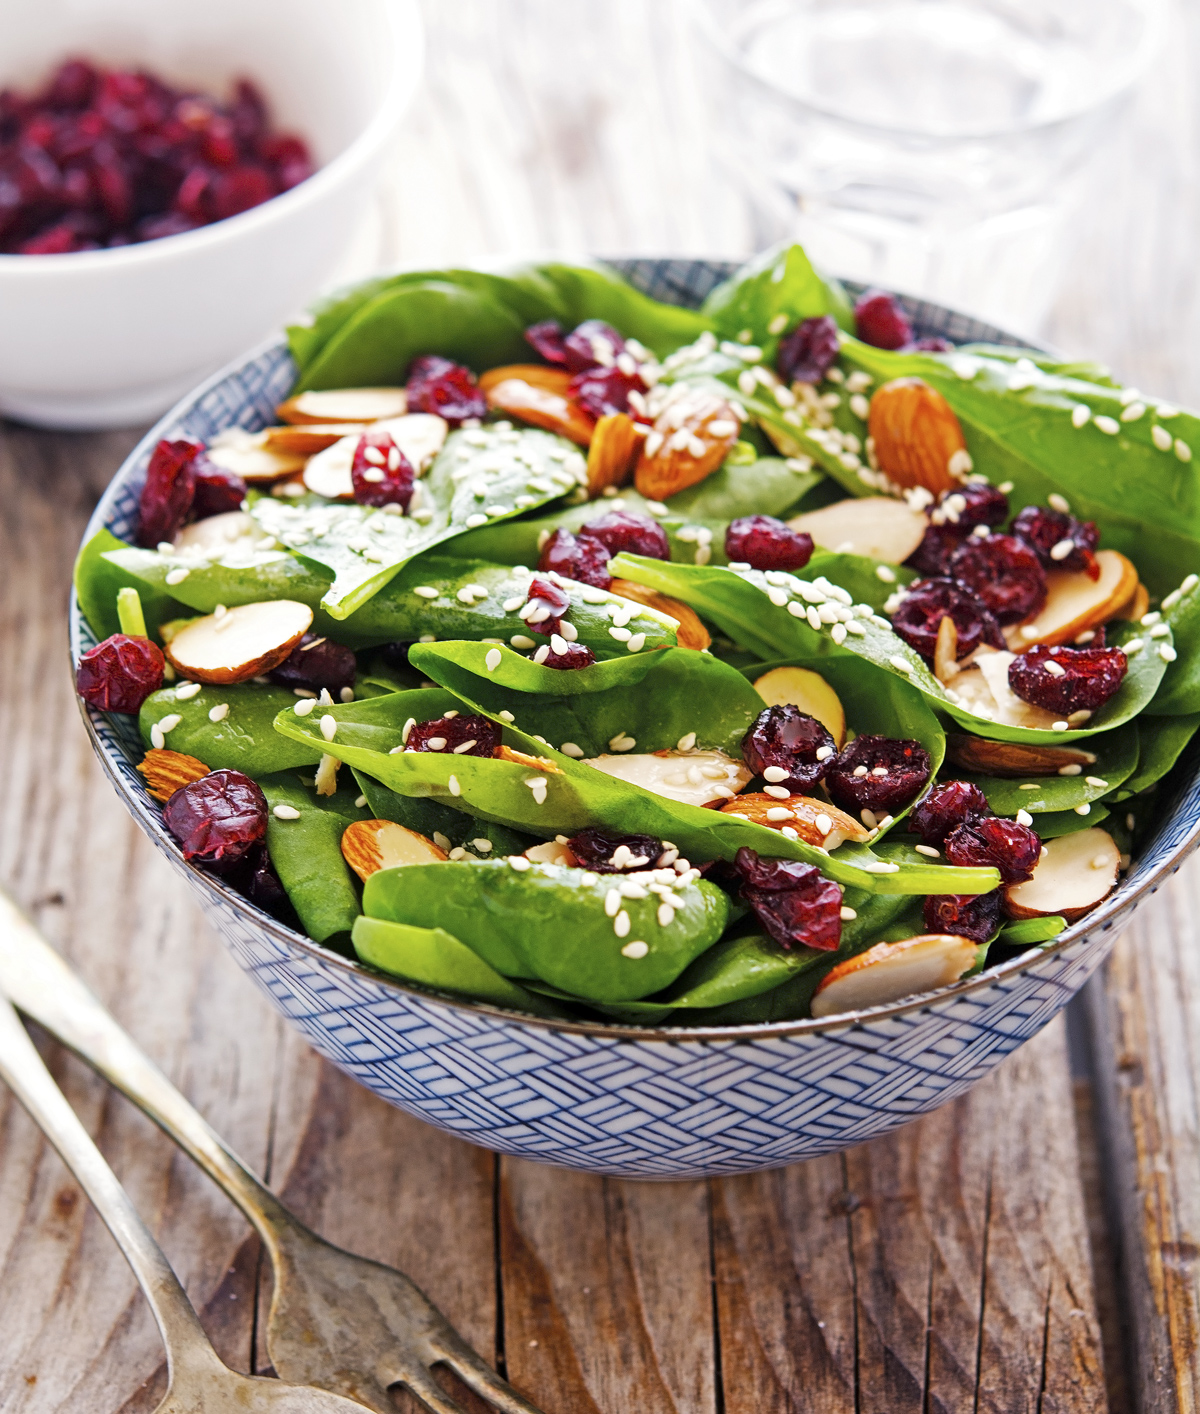 Cranberry Almond Spinach Salad with Sesame Dressing